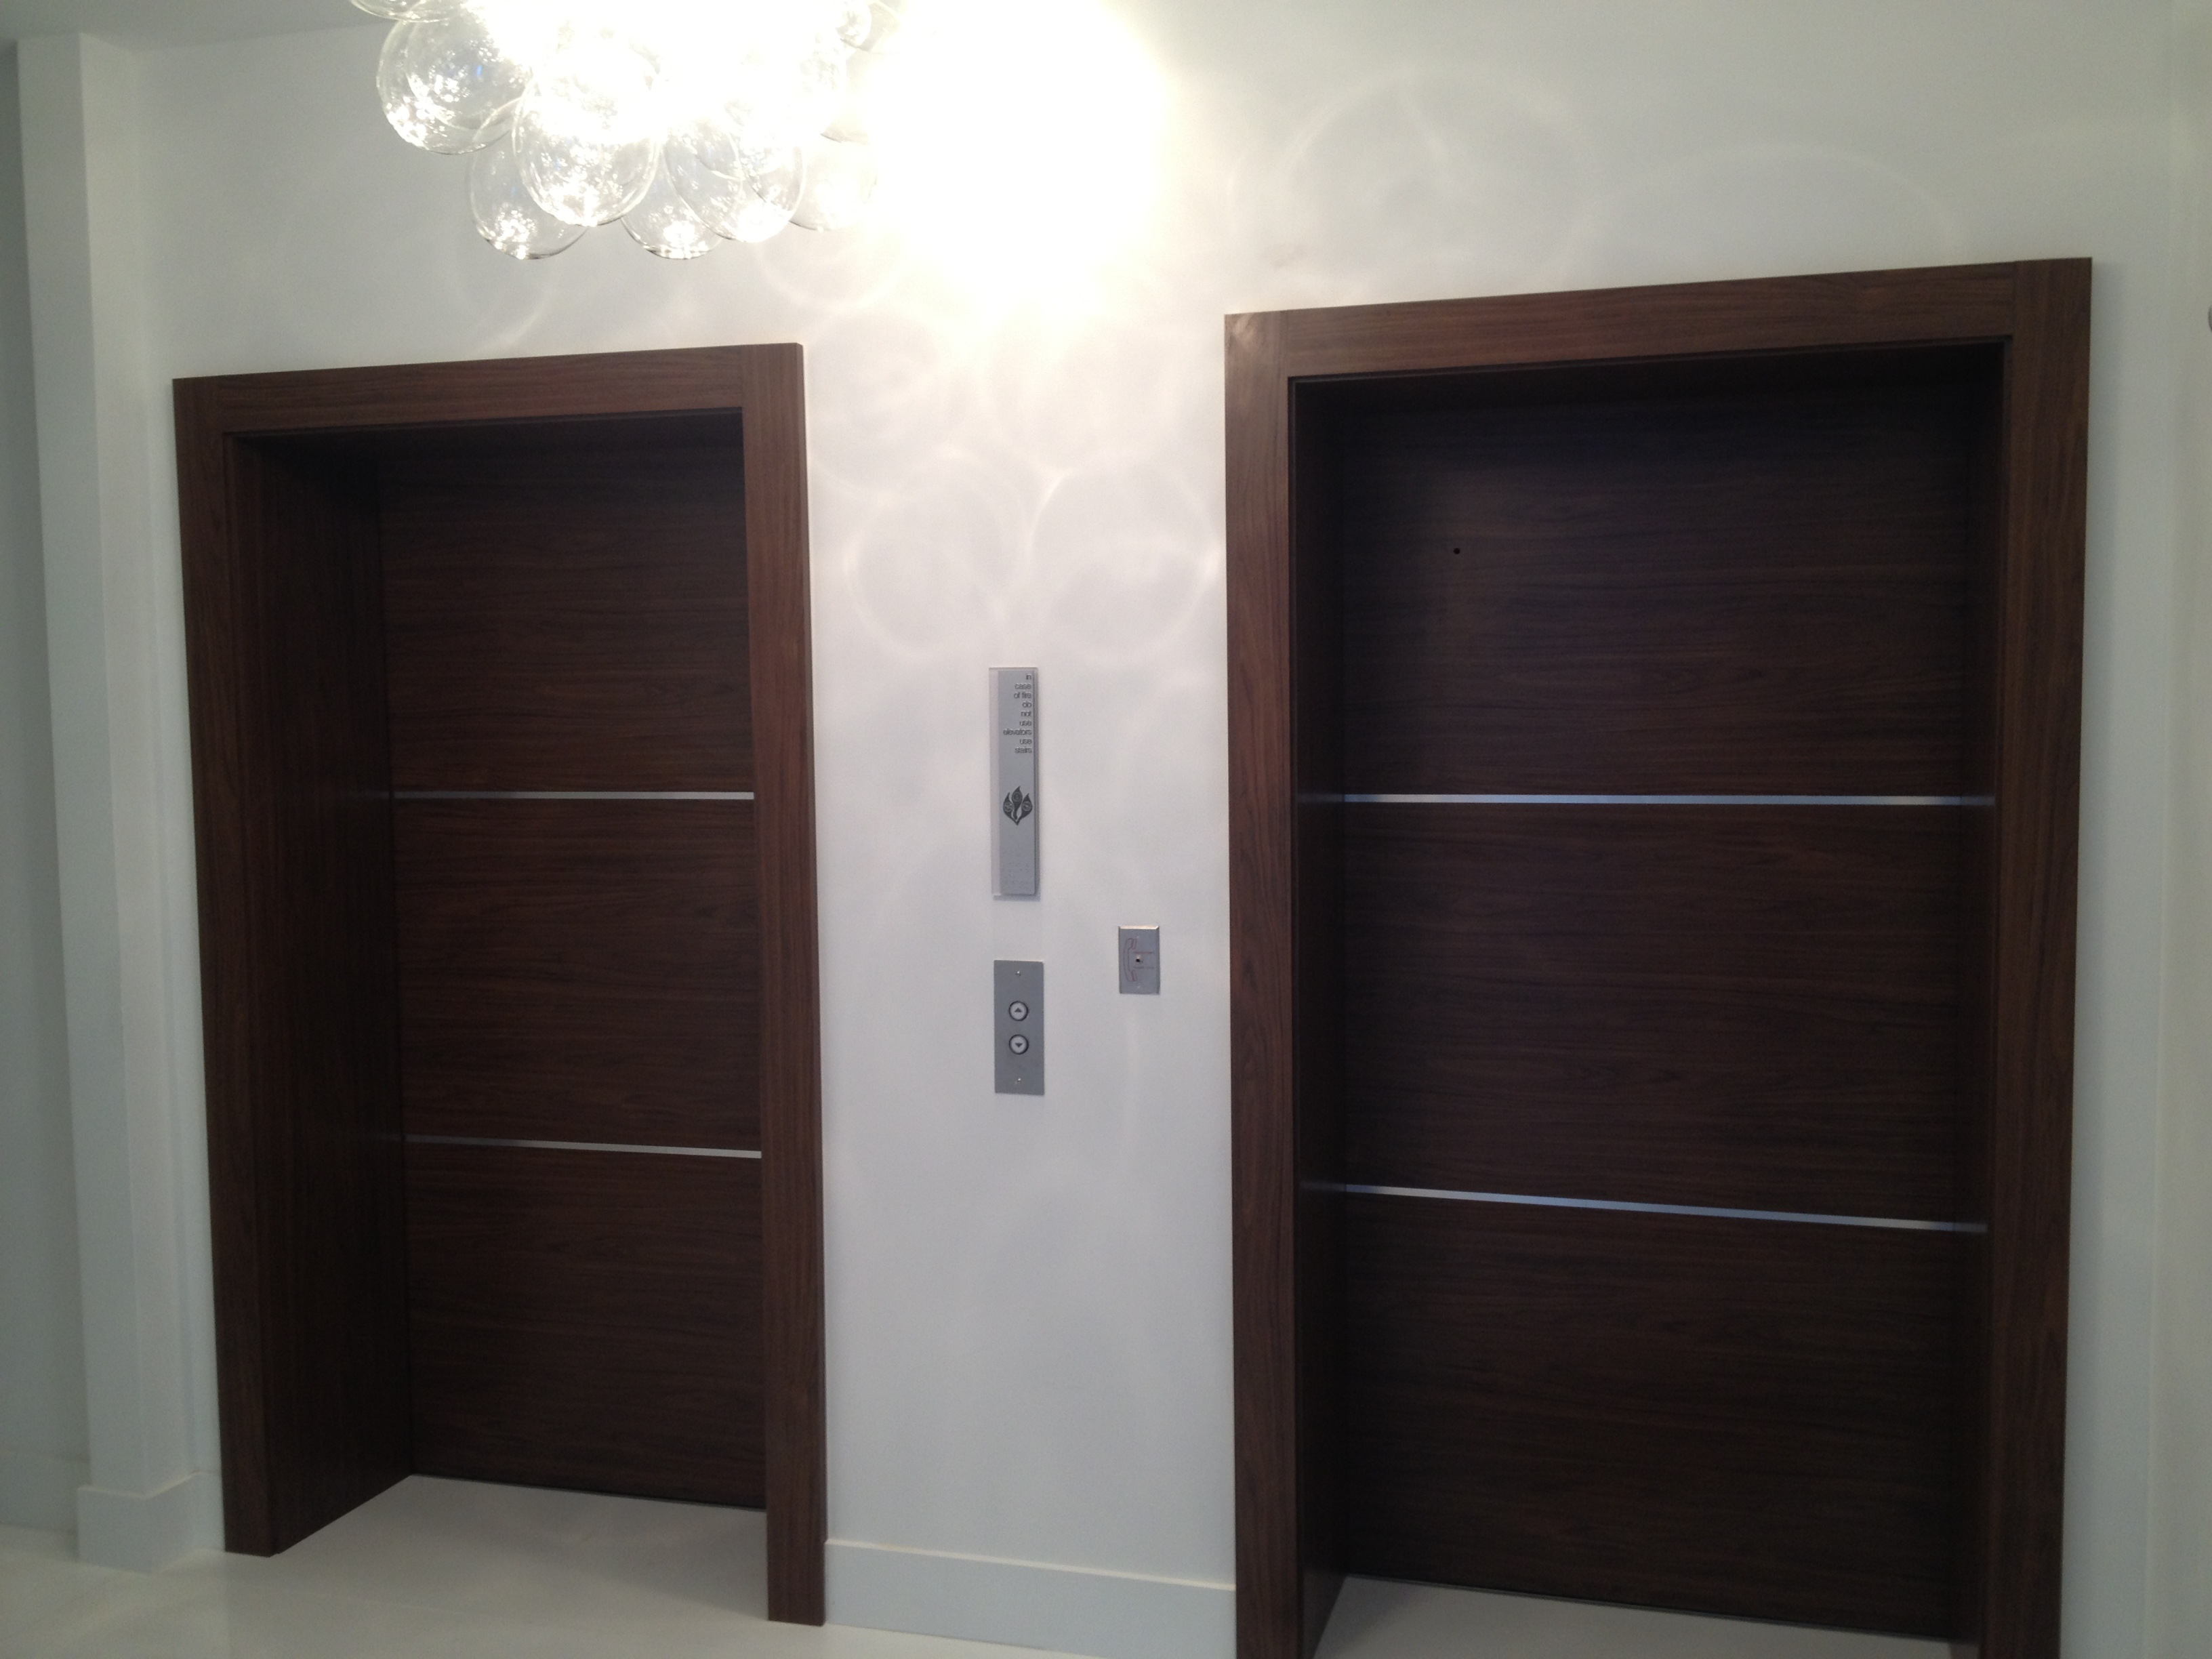 Condo Entry Door Refacing & DAYORIS Doors | Condo Entry Door Refacing